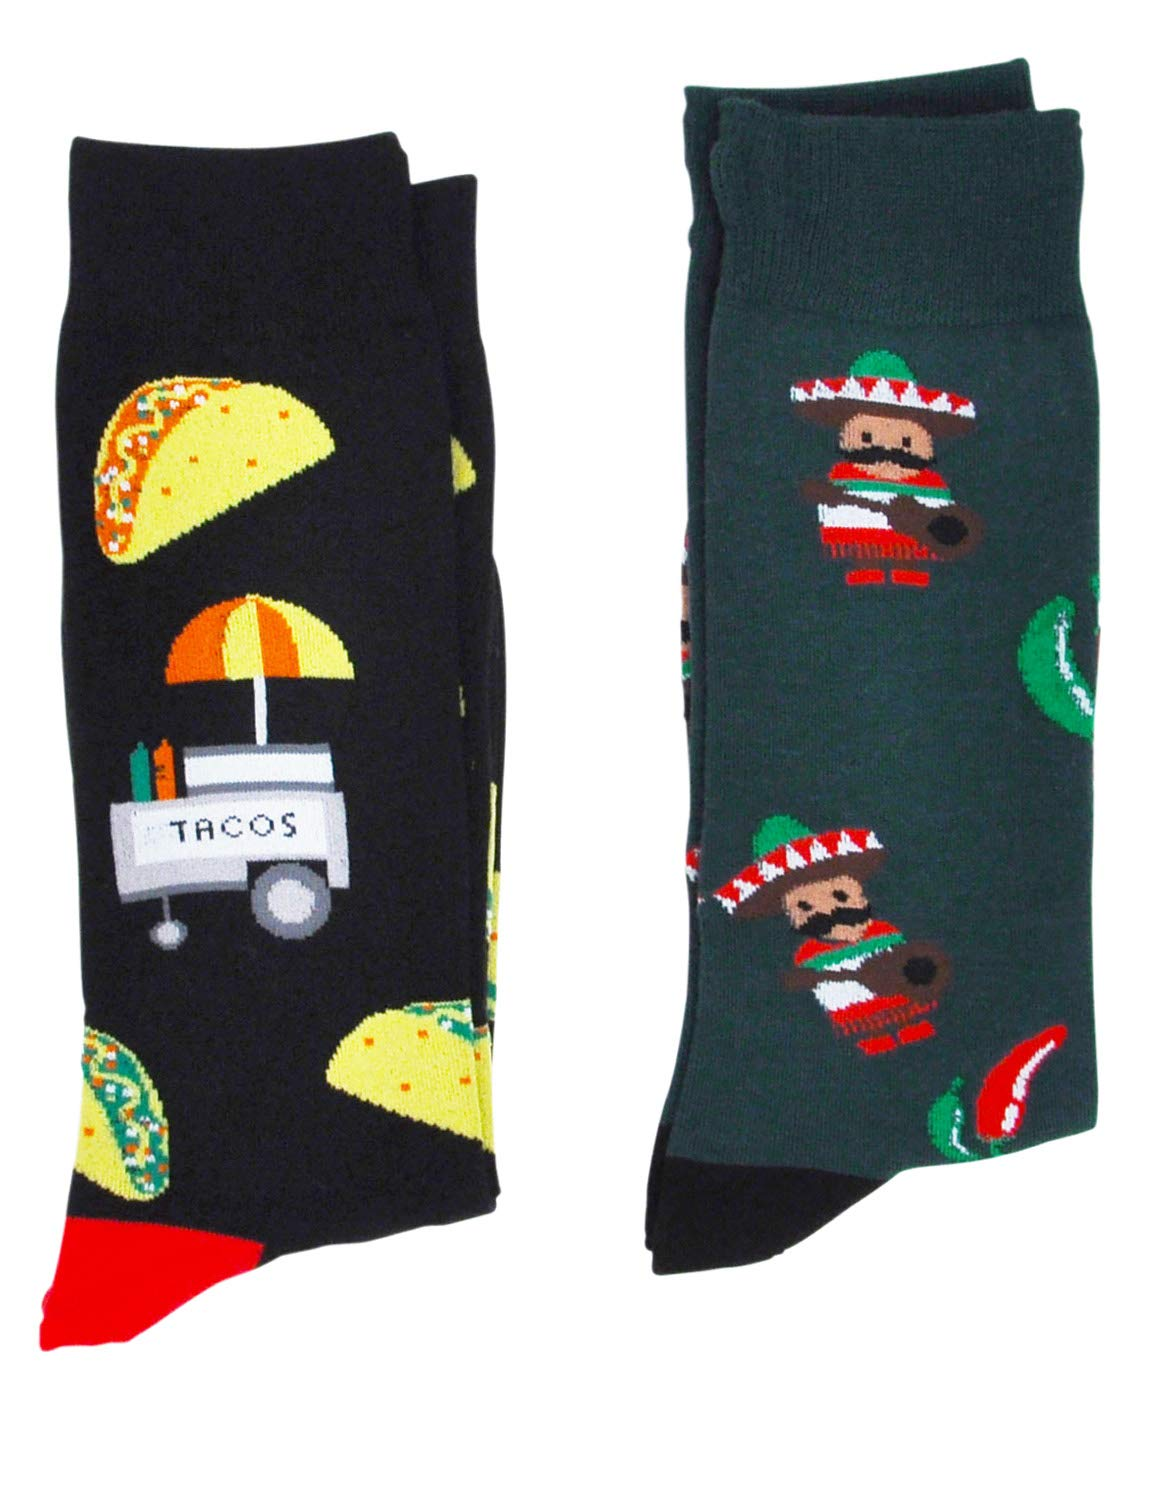 Fine Fit Mens Novelty Print Trouser Socks 2 Pair Set (Tacos & Chilis)